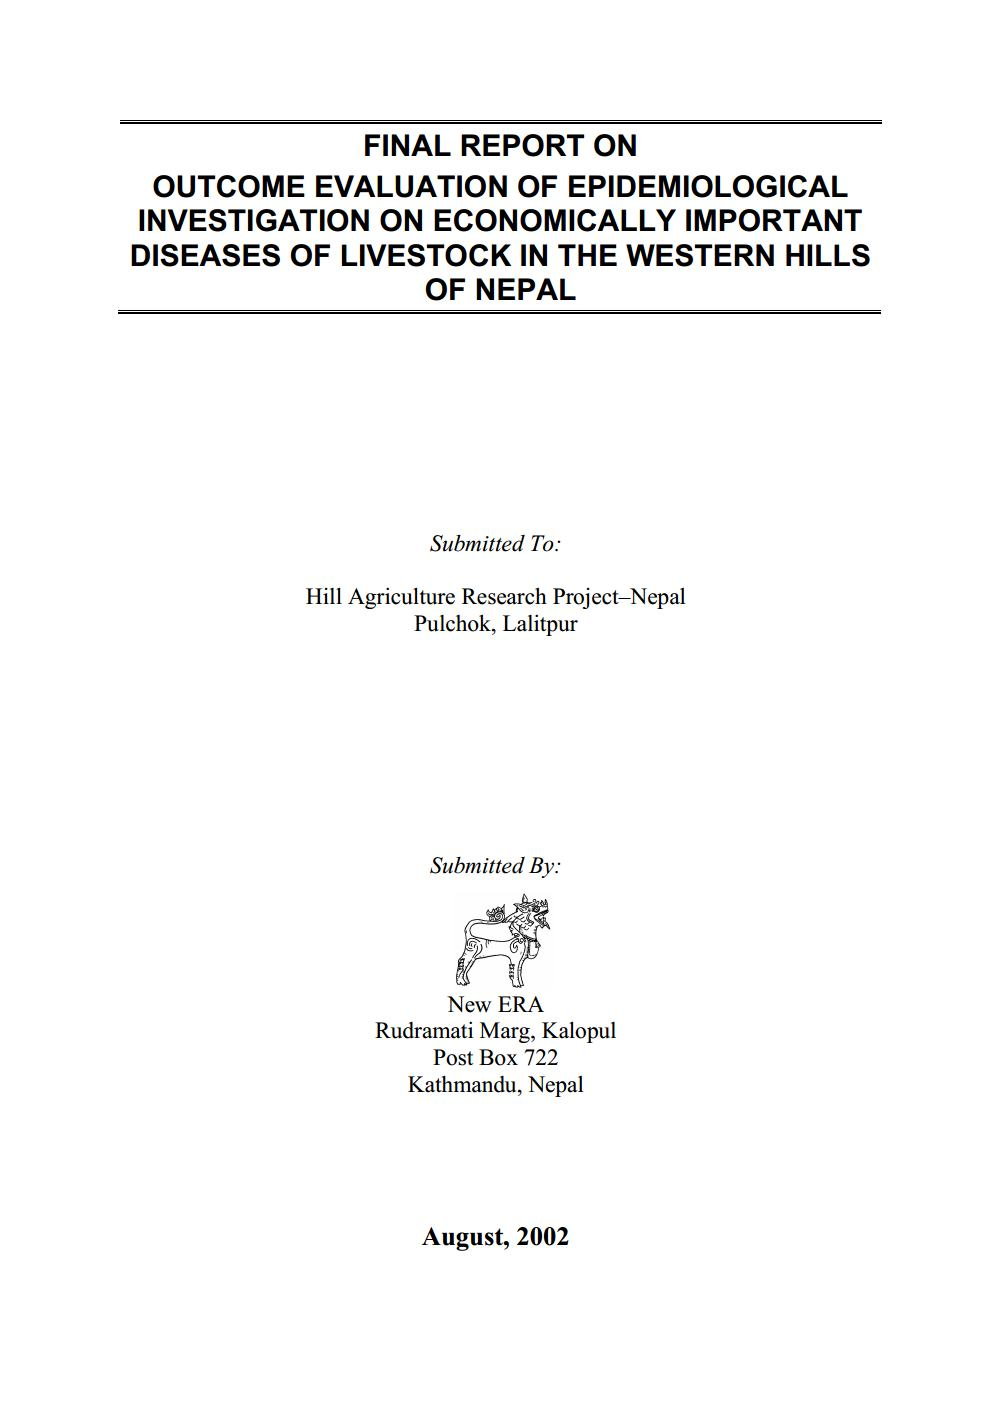 Final Report on Outcome Evaluation of Epidemiological Investigation on Economically Important Diseases of Livestock in the Western Hills of Nepal